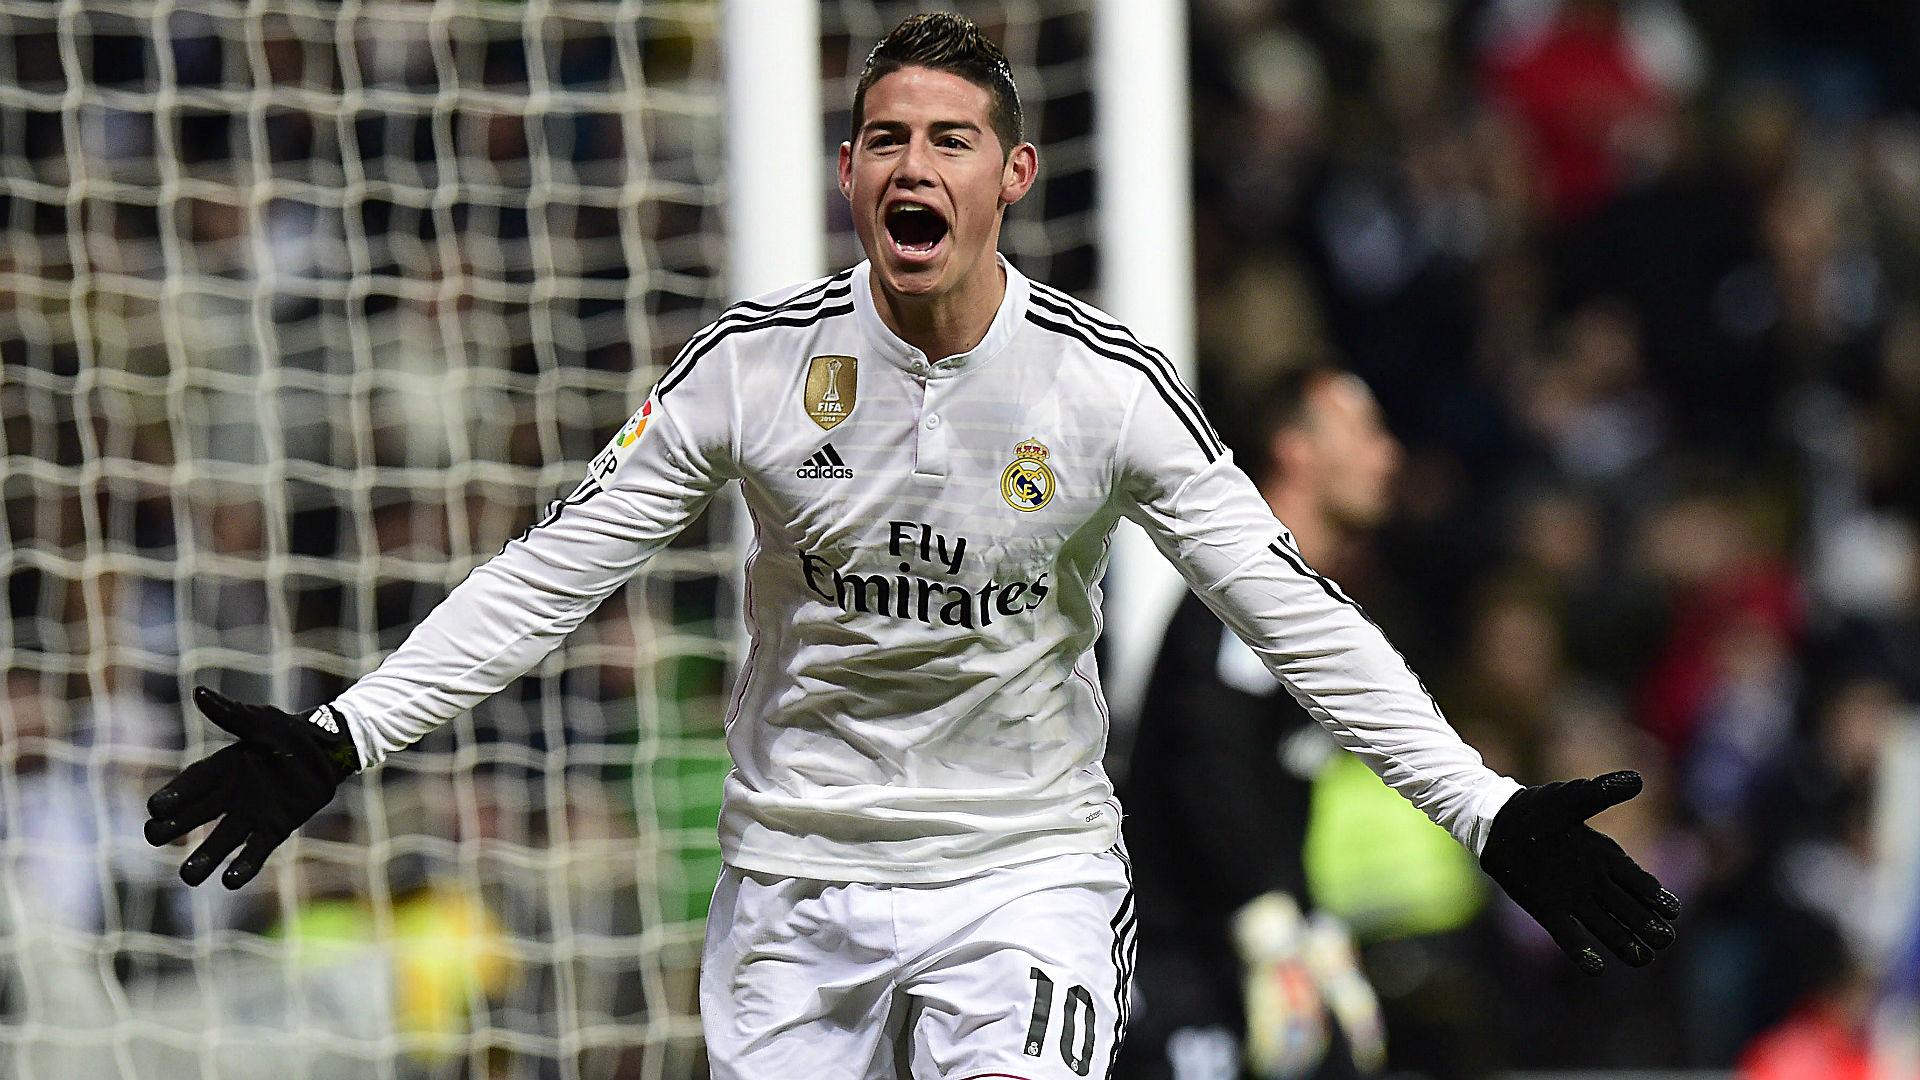 Atletico Madrid vs. Real Madrid odds and pick –  Los Blancos look for first win of season over cross-town rivals